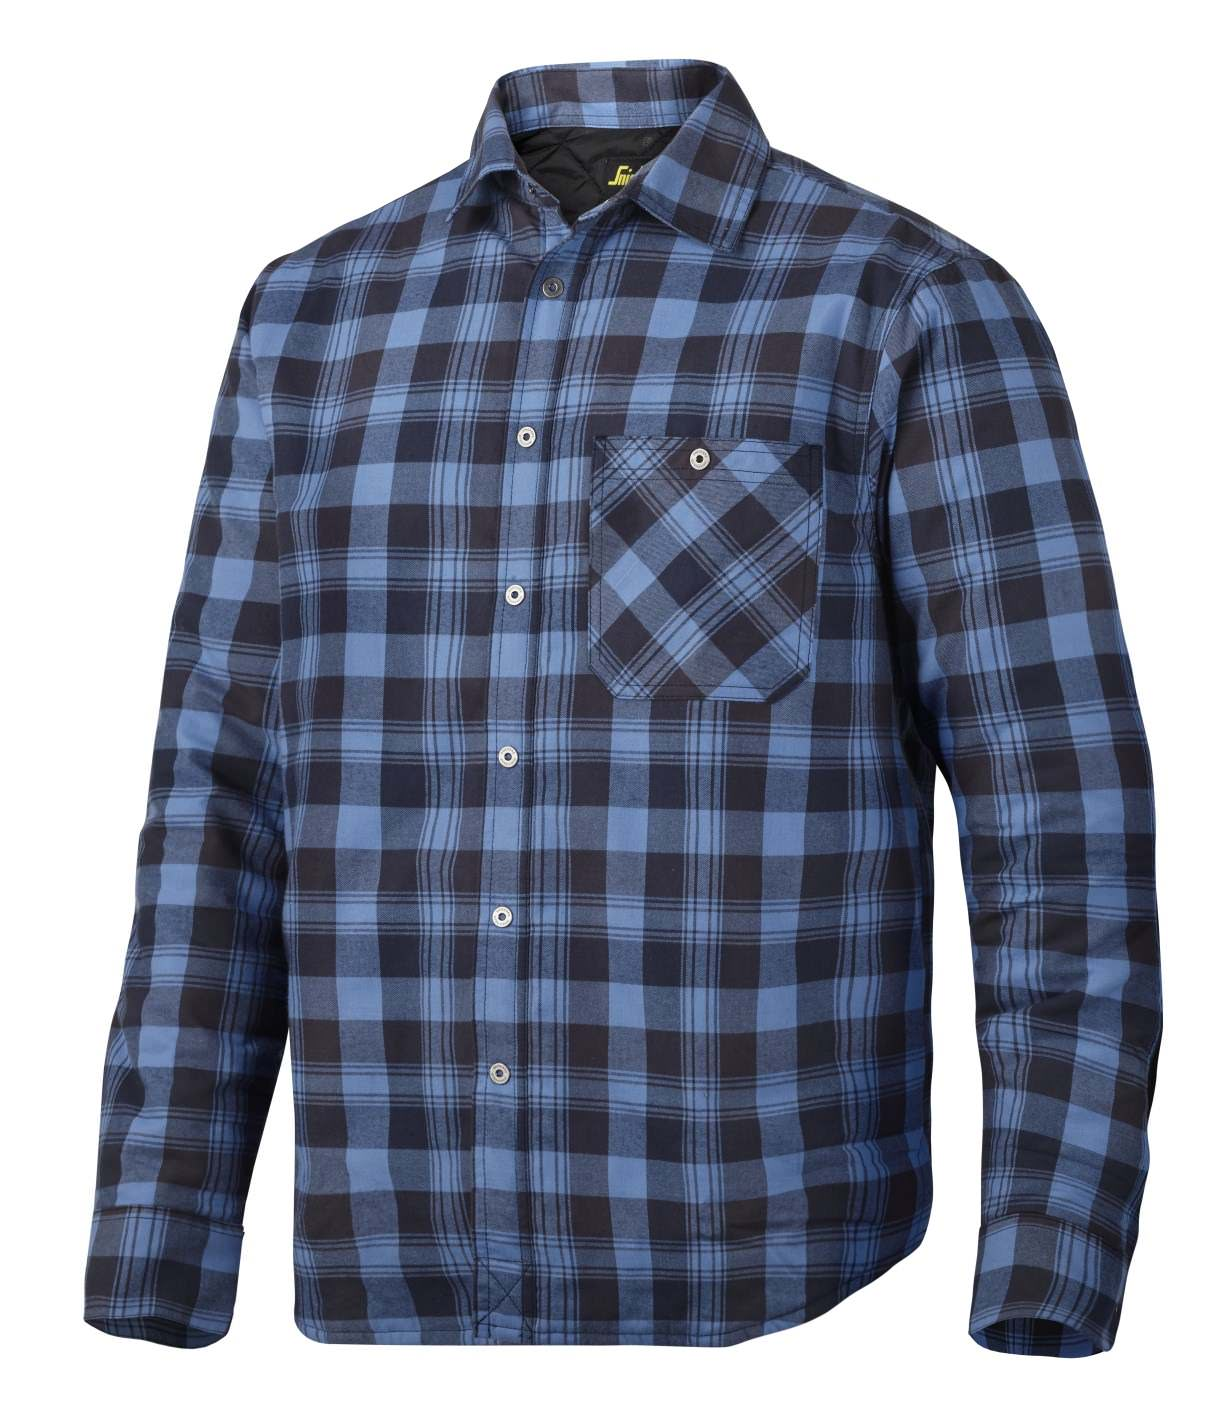 Snickers 8501 RuffWork, Padded Flannel Checked LS Shirt